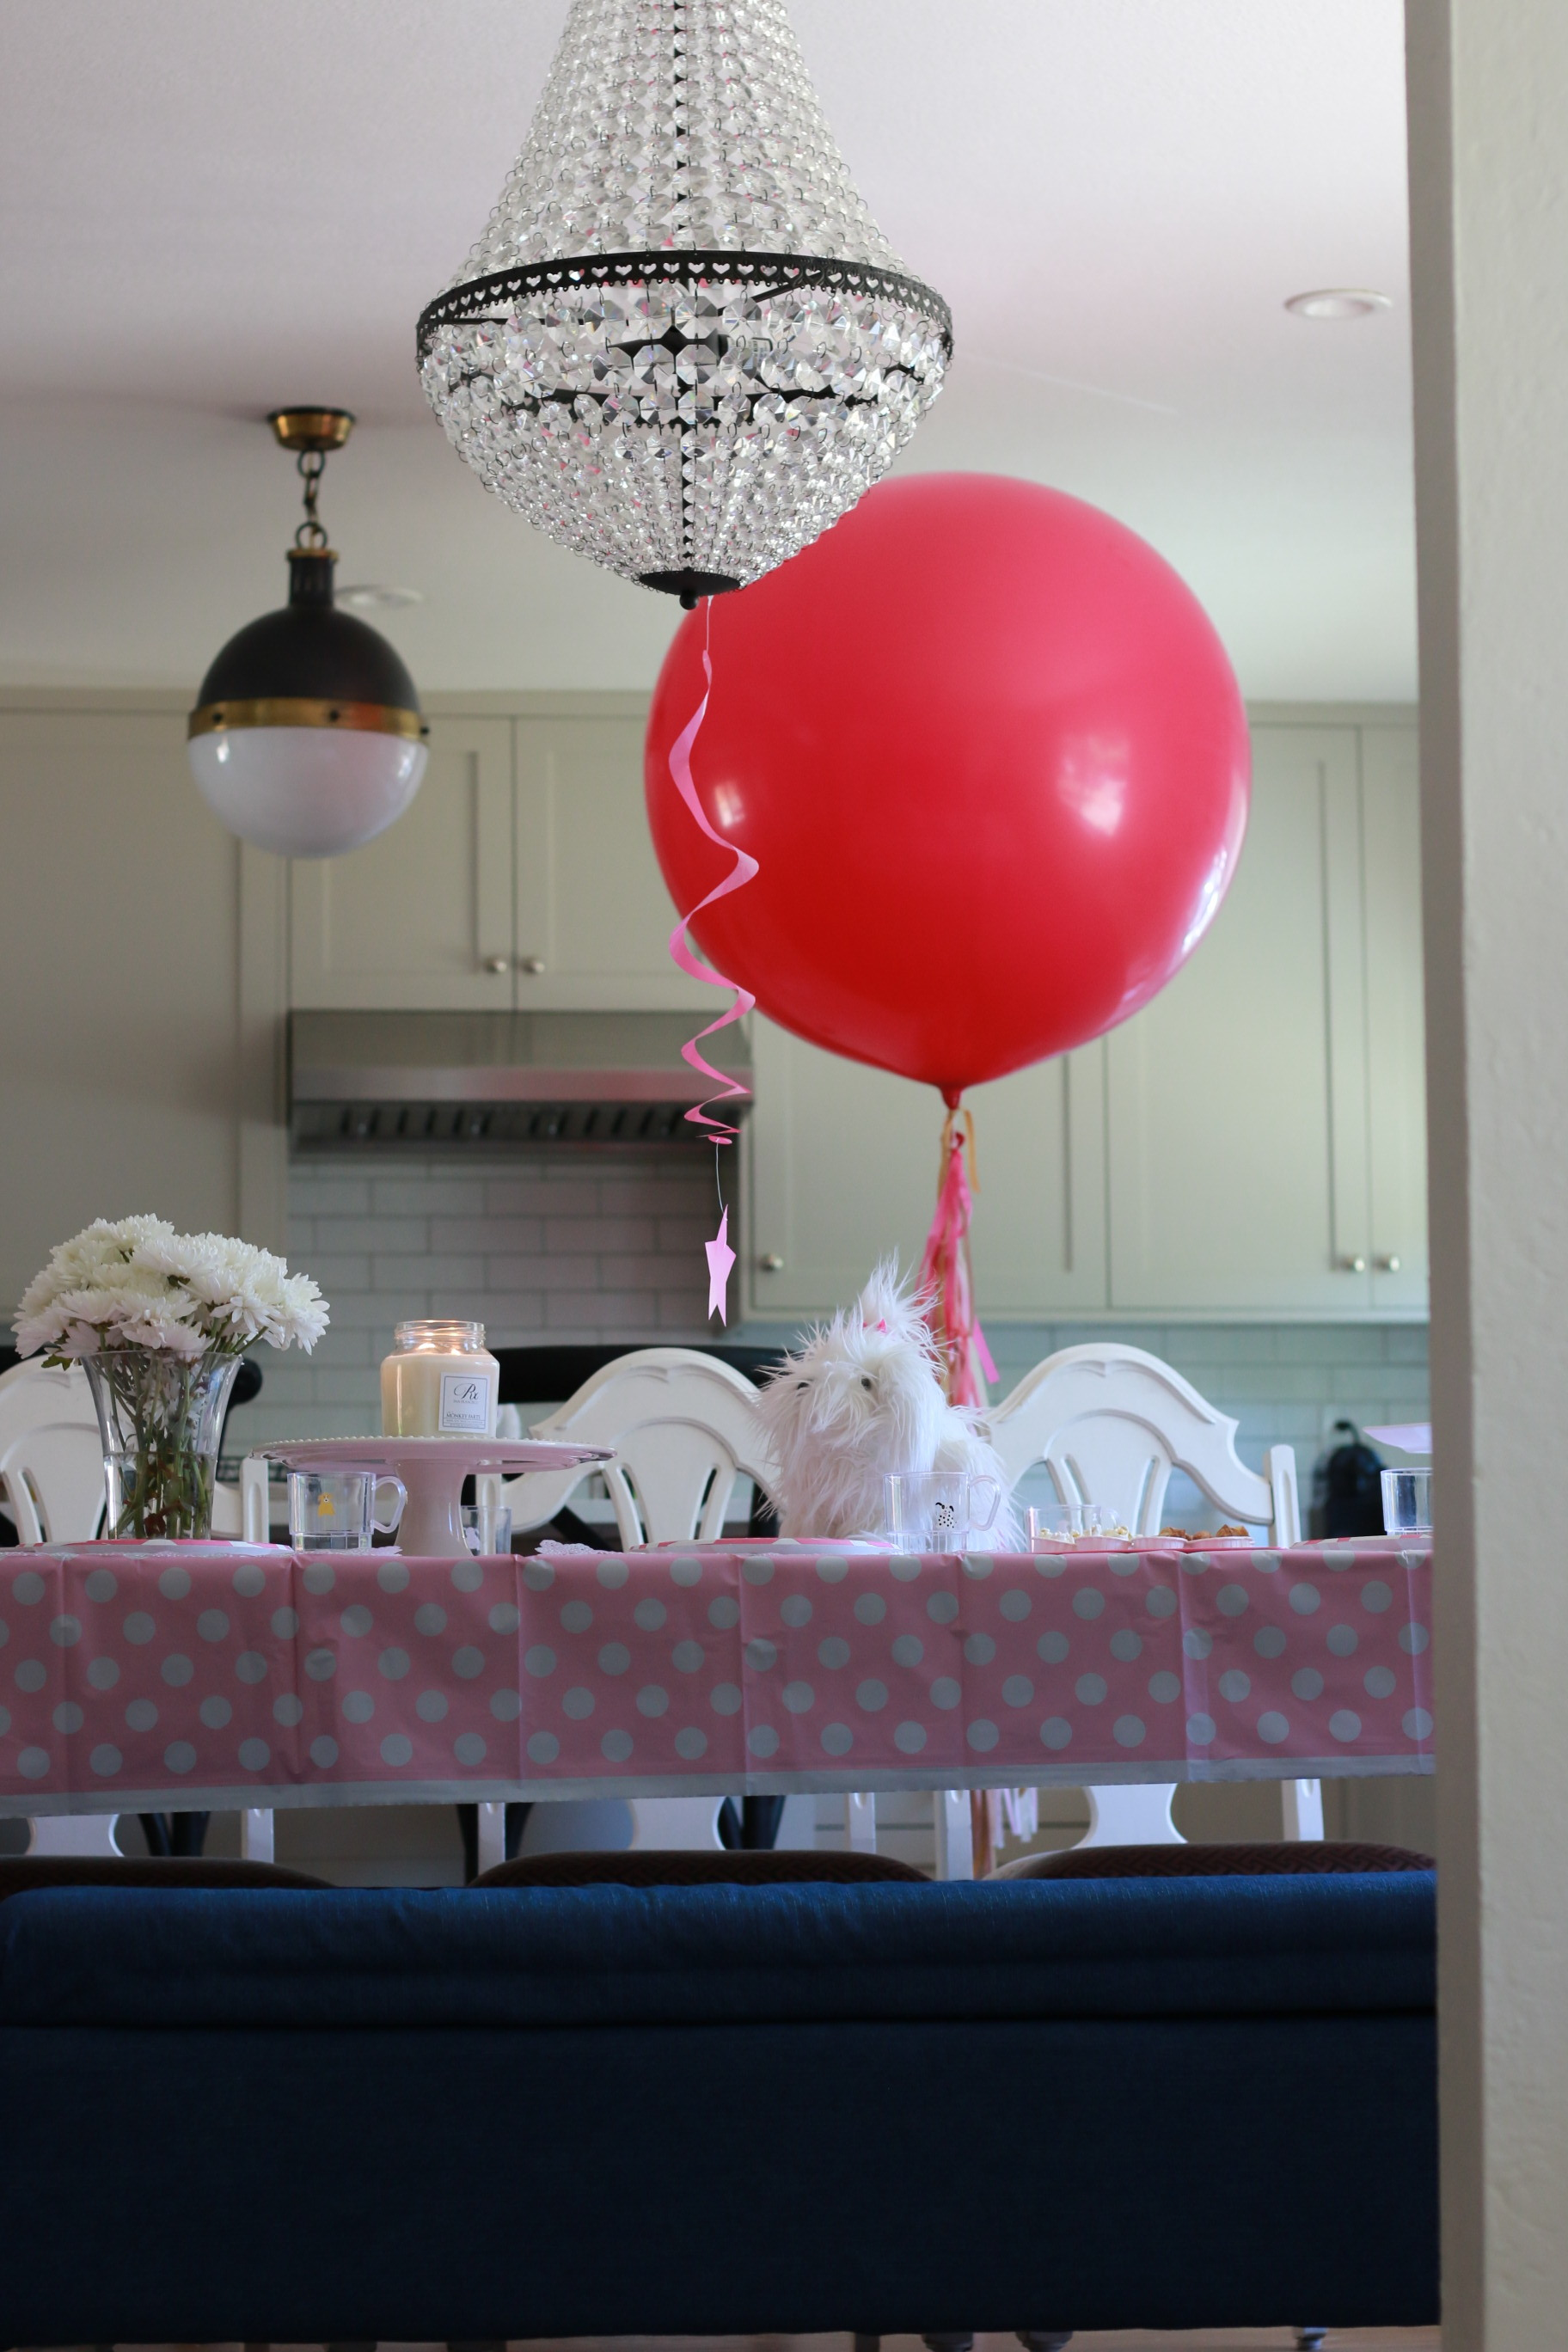 giant-balloon-raspberry-red-handpainted-tail-gold-ribbon-birthday-party-tea-puppy-kitchen-danville-ca